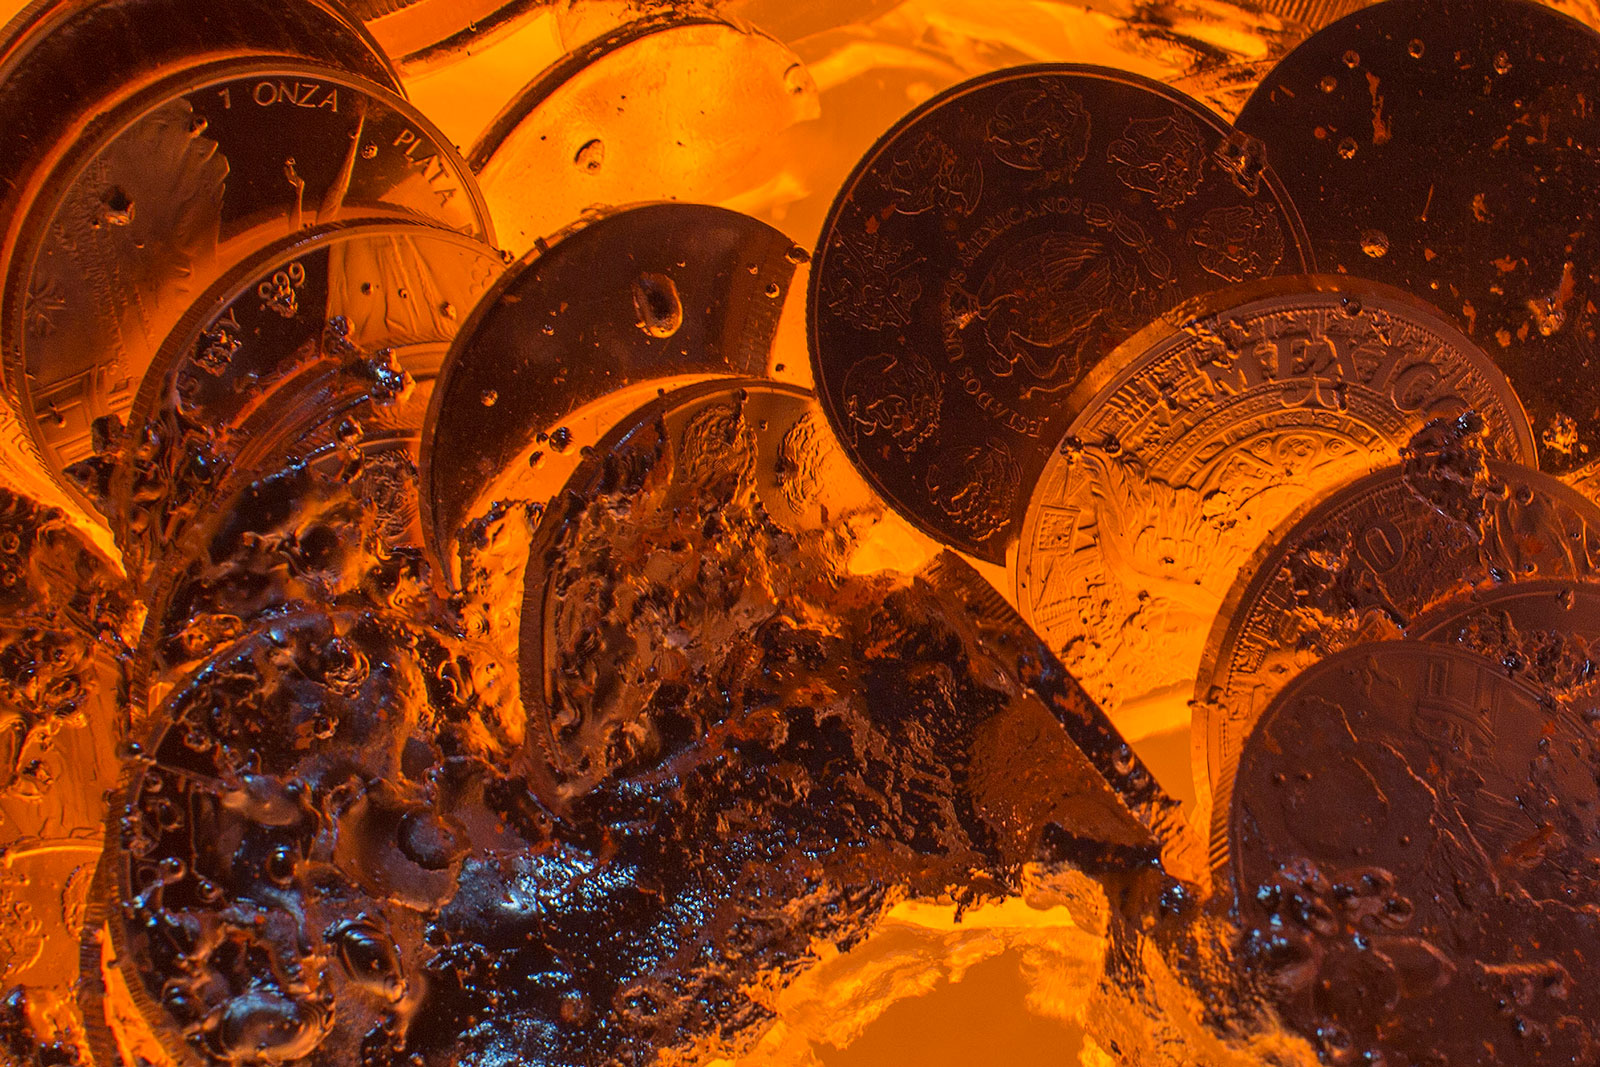 Silver coins are melted for reuse at the Mexican Mint, or Casa de Moneda, in San Luis Potosi, Mexico